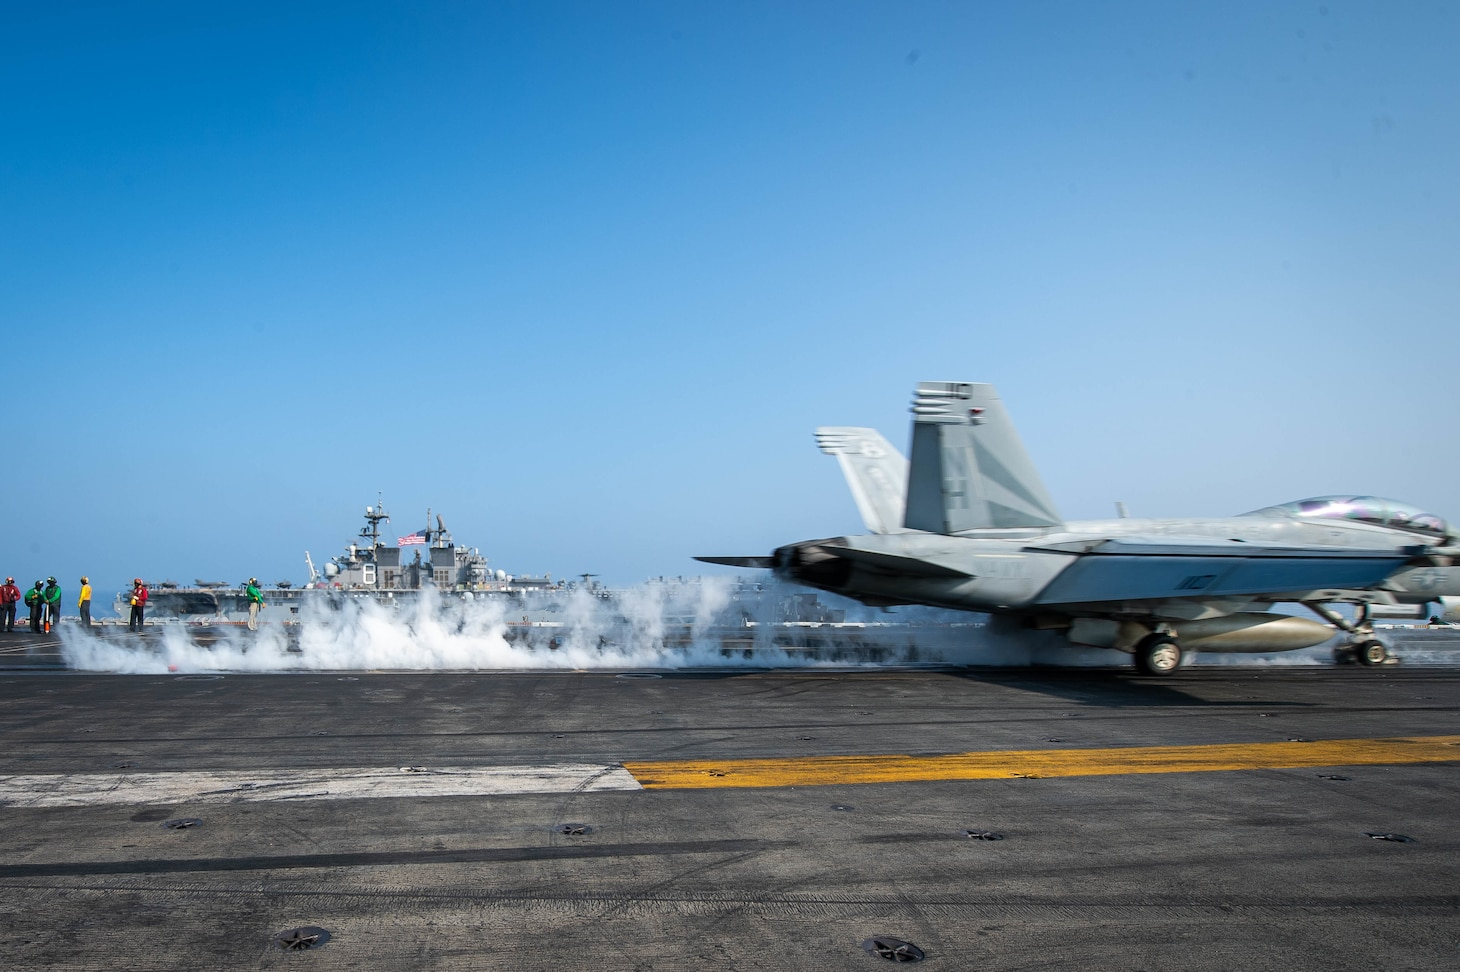 """SOUTH CHINA SEA (April 9, 2021) – An F/A-18F Super Hornet, assigned to the """"Black Knights"""" of Strike Fighter Squadron (VFA) 154, launches from the flight deck of the aircraft carrier USS Theodore Roosevelt (CVN 71) in the South China Sea April 9, 2021. The Theodore Roosevelt Carrier Strike Group, Makin Island Amphibious Ready Group and the Ticonderoga-class guided-missile cruiser USS Port Royal (CG 73) are conducting expeditionary strike force operations during their deployments to the 7th Fleet area of operations. As the U.S. Navy's largest forward-deployed fleet, 7th Fleet routinely operates and interacts with 35 maritime nations while conducting missions to preserve and protect a free and open Indo-Pacific region. (U.S. Navy photo by Mass Communication Specialist 3rd Class Dartañon D. De La Garza)"""